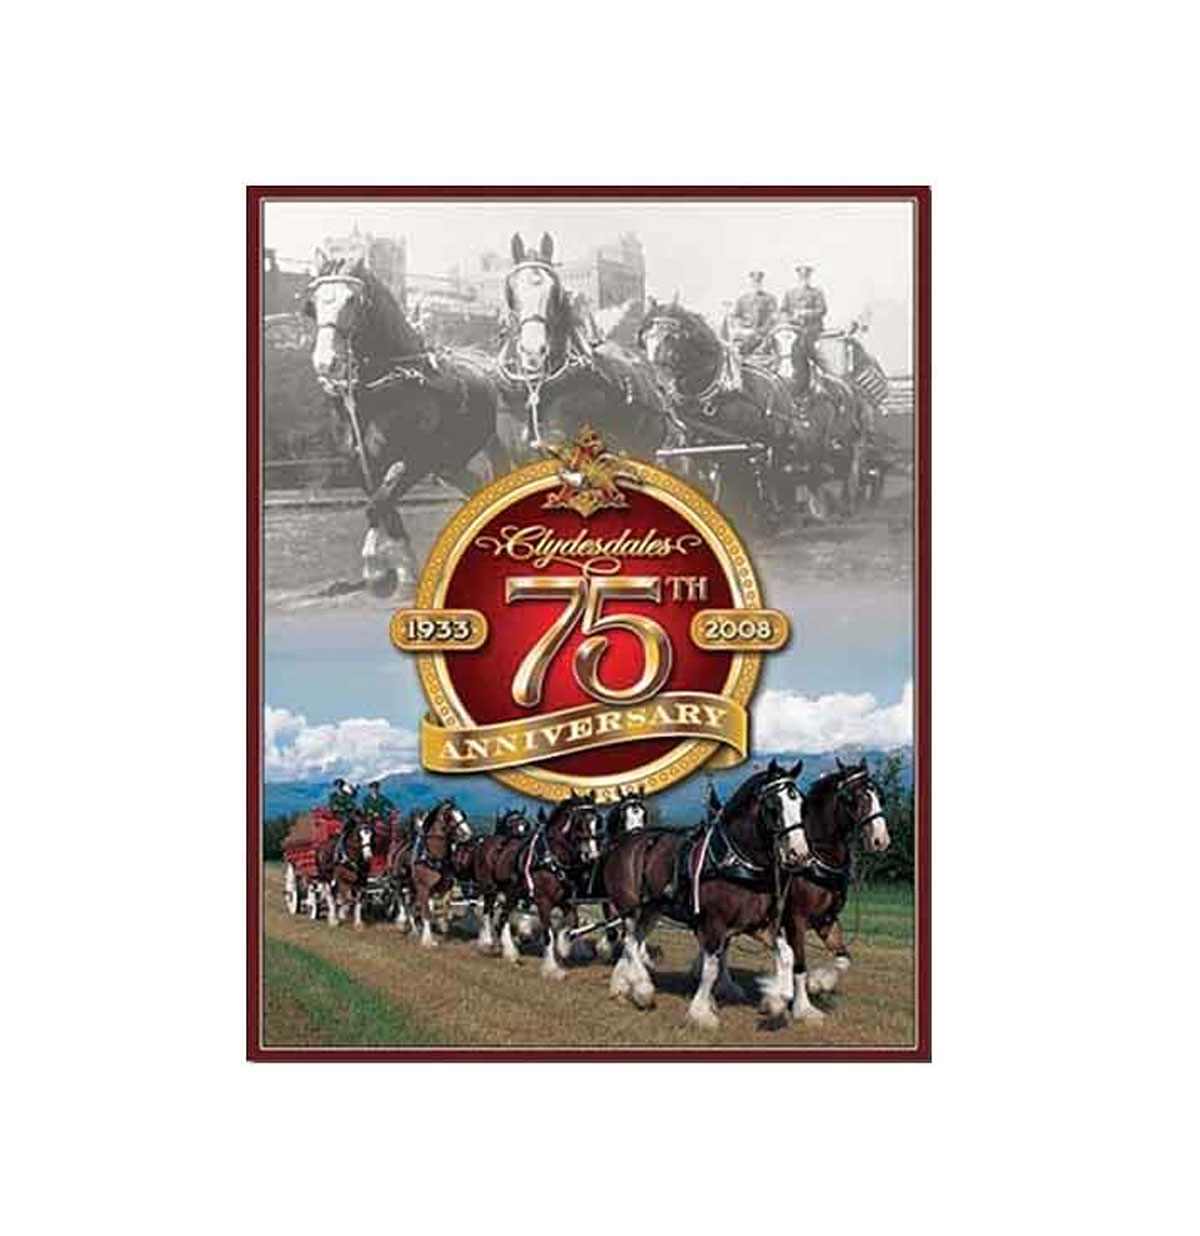 Budweiser Clydesdales 75th Anniversary Metalen poster